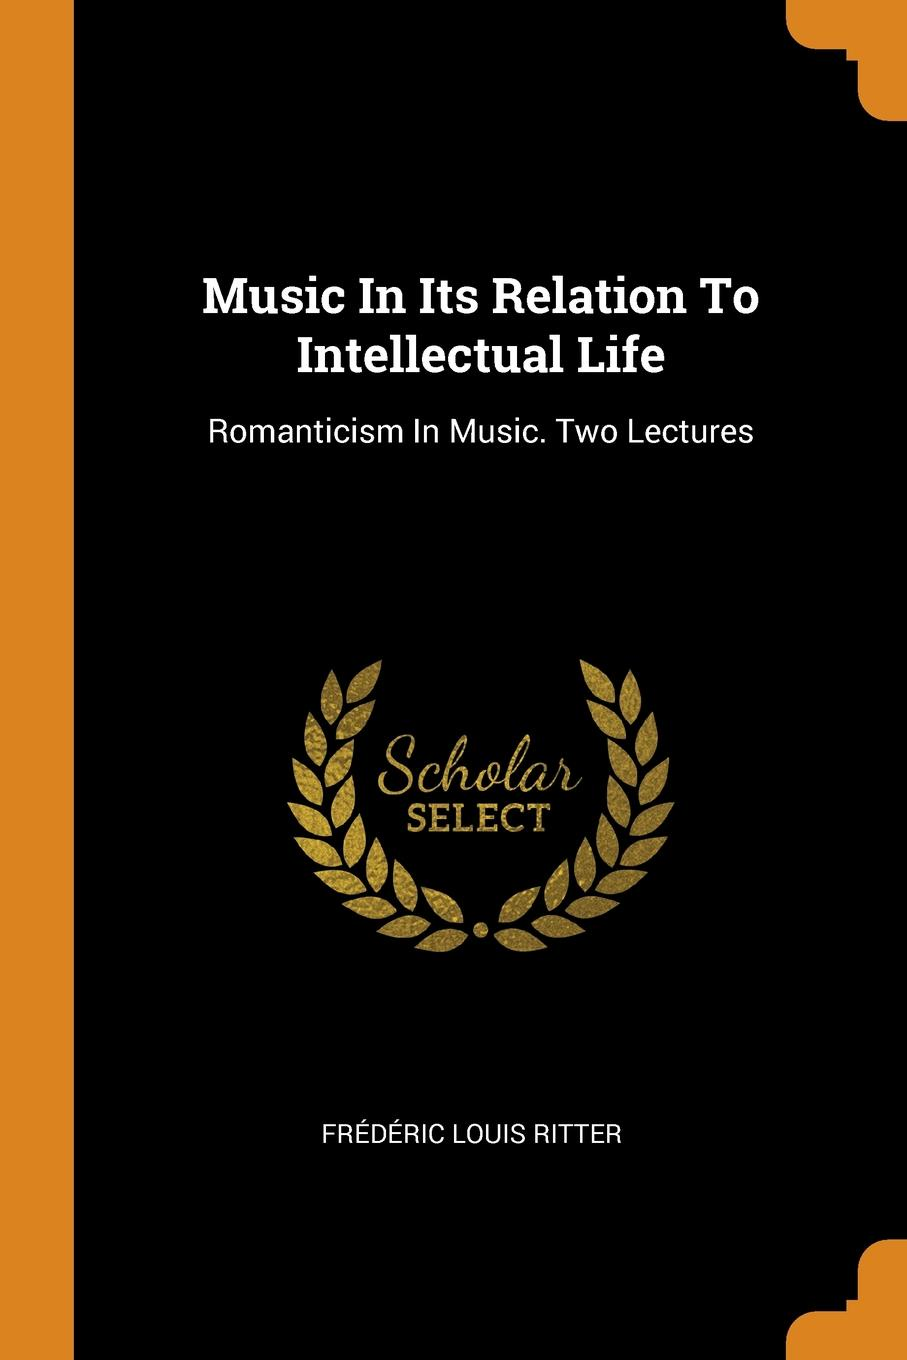 Music In Its Relation To Intellectual Life. Romanticism In Music. Two Lectures